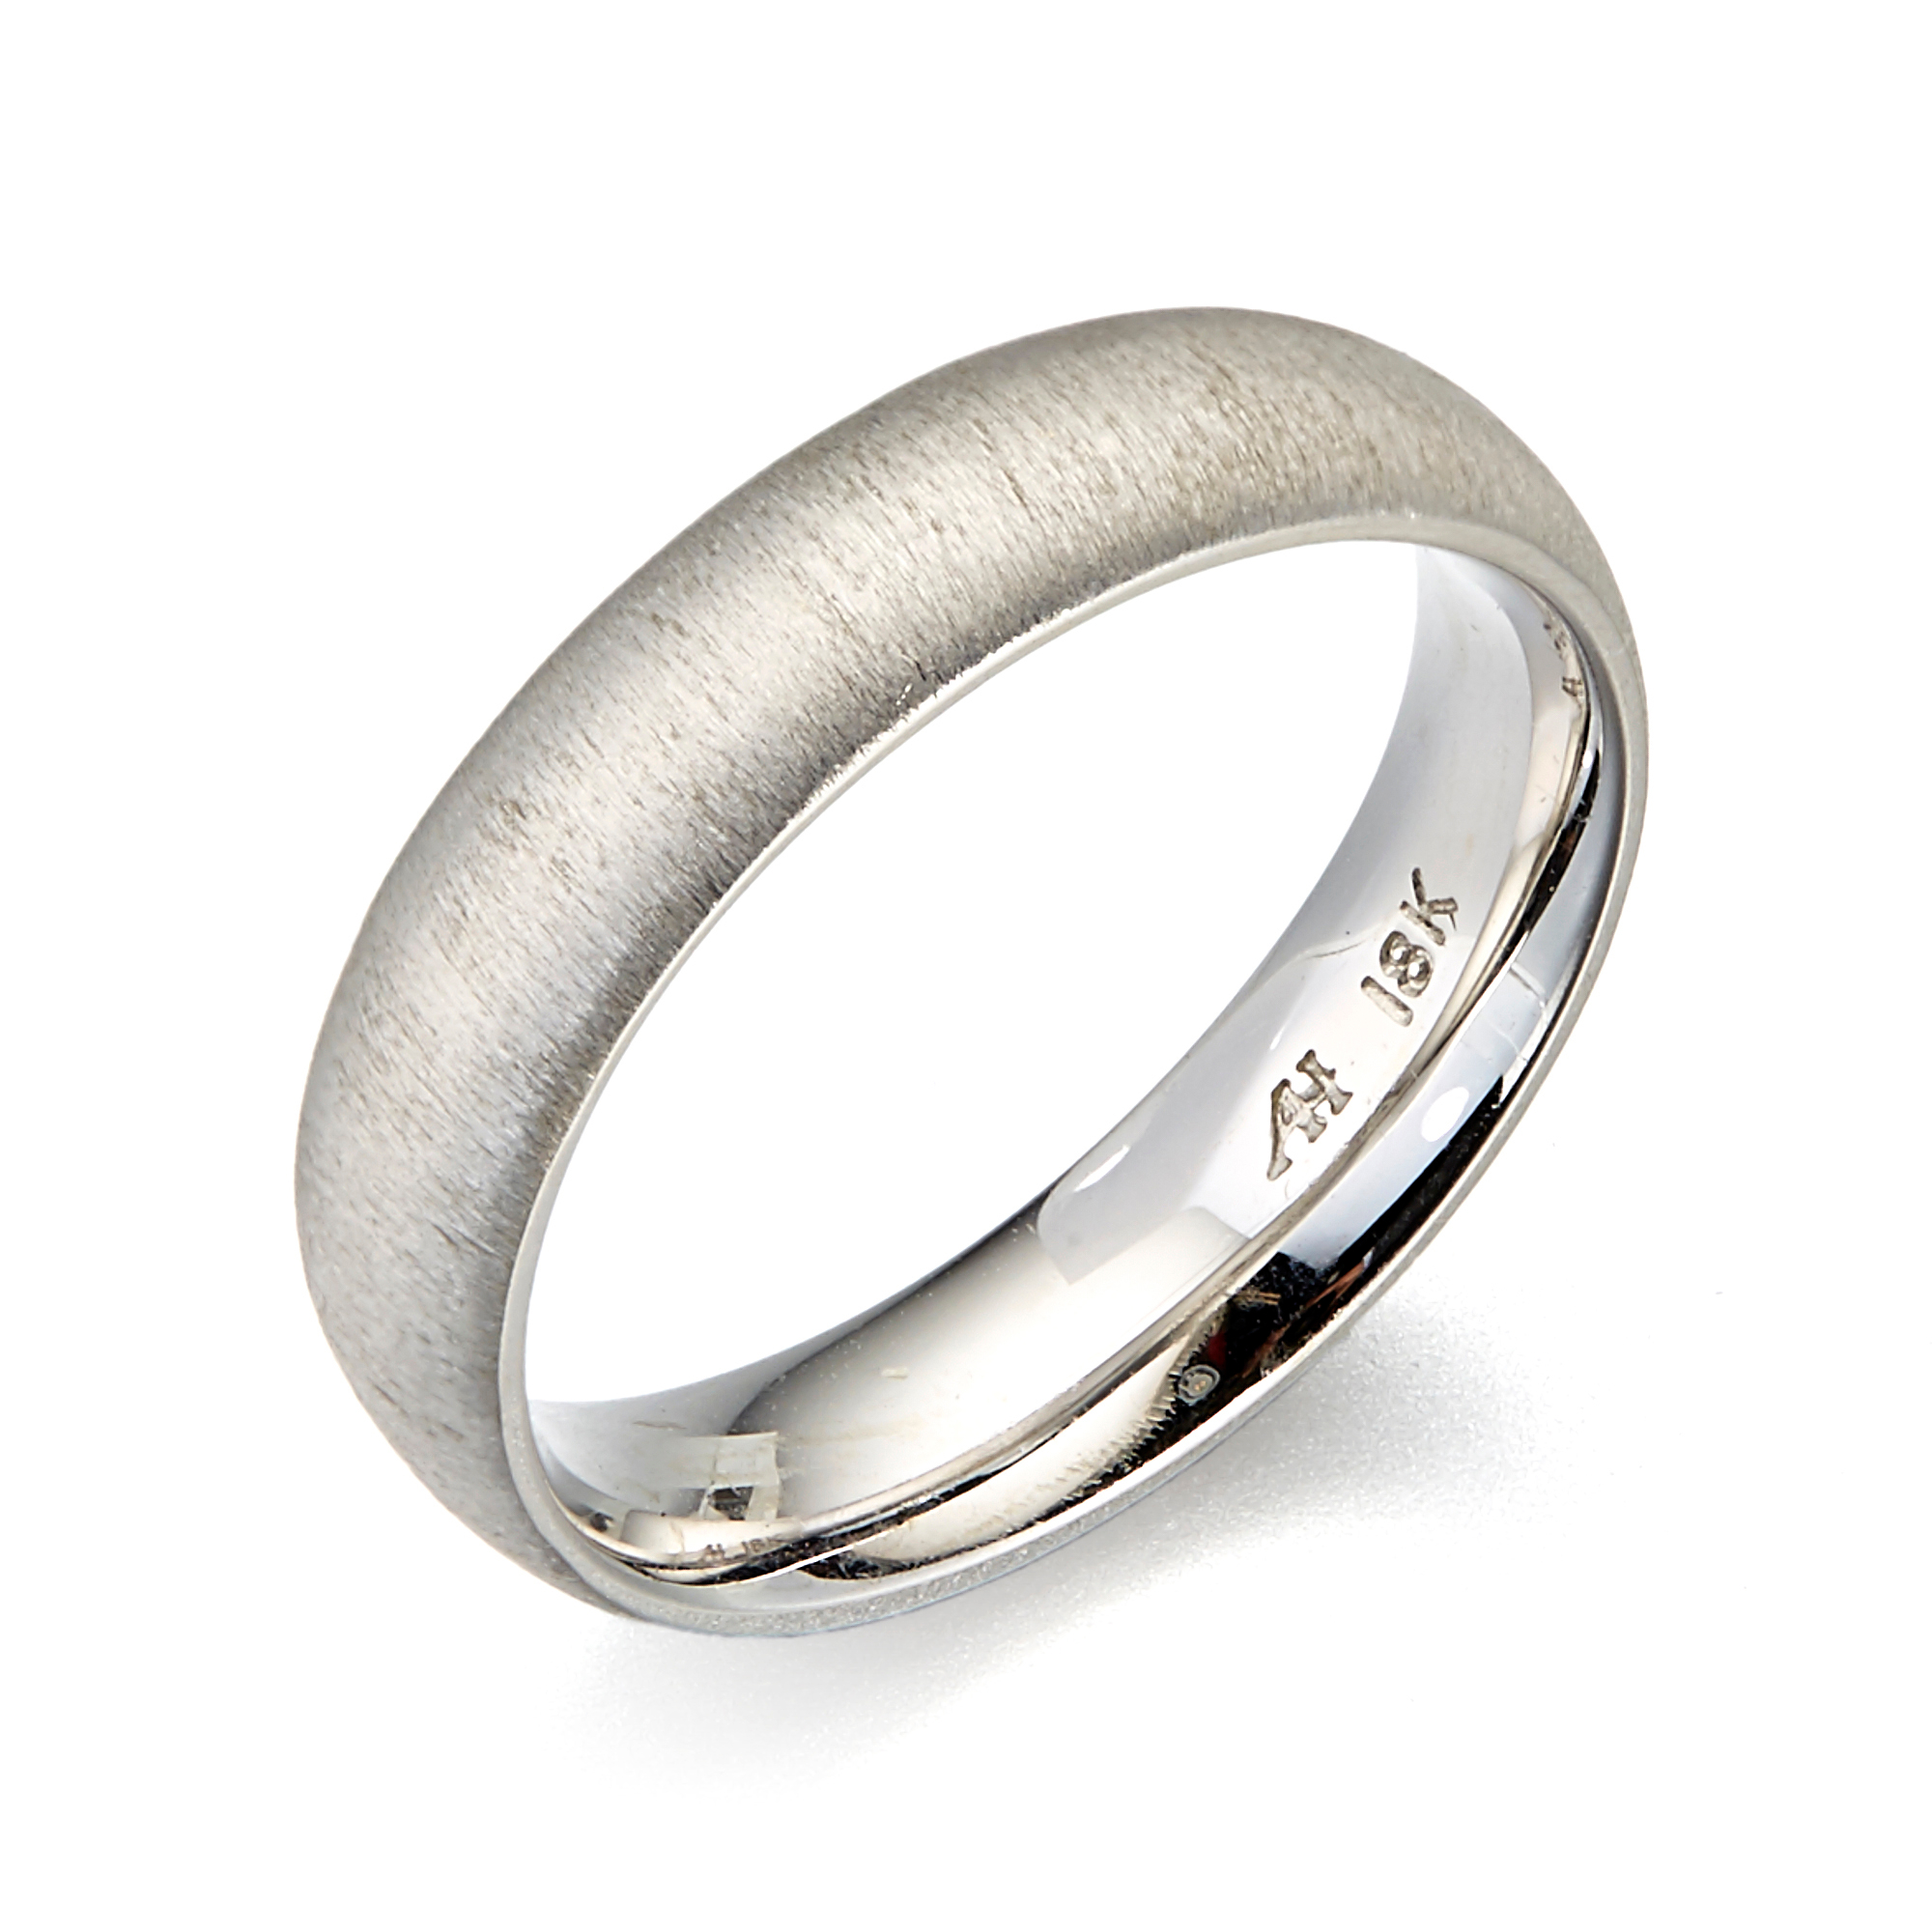 Aaron Henry White Gold Savannah Ring